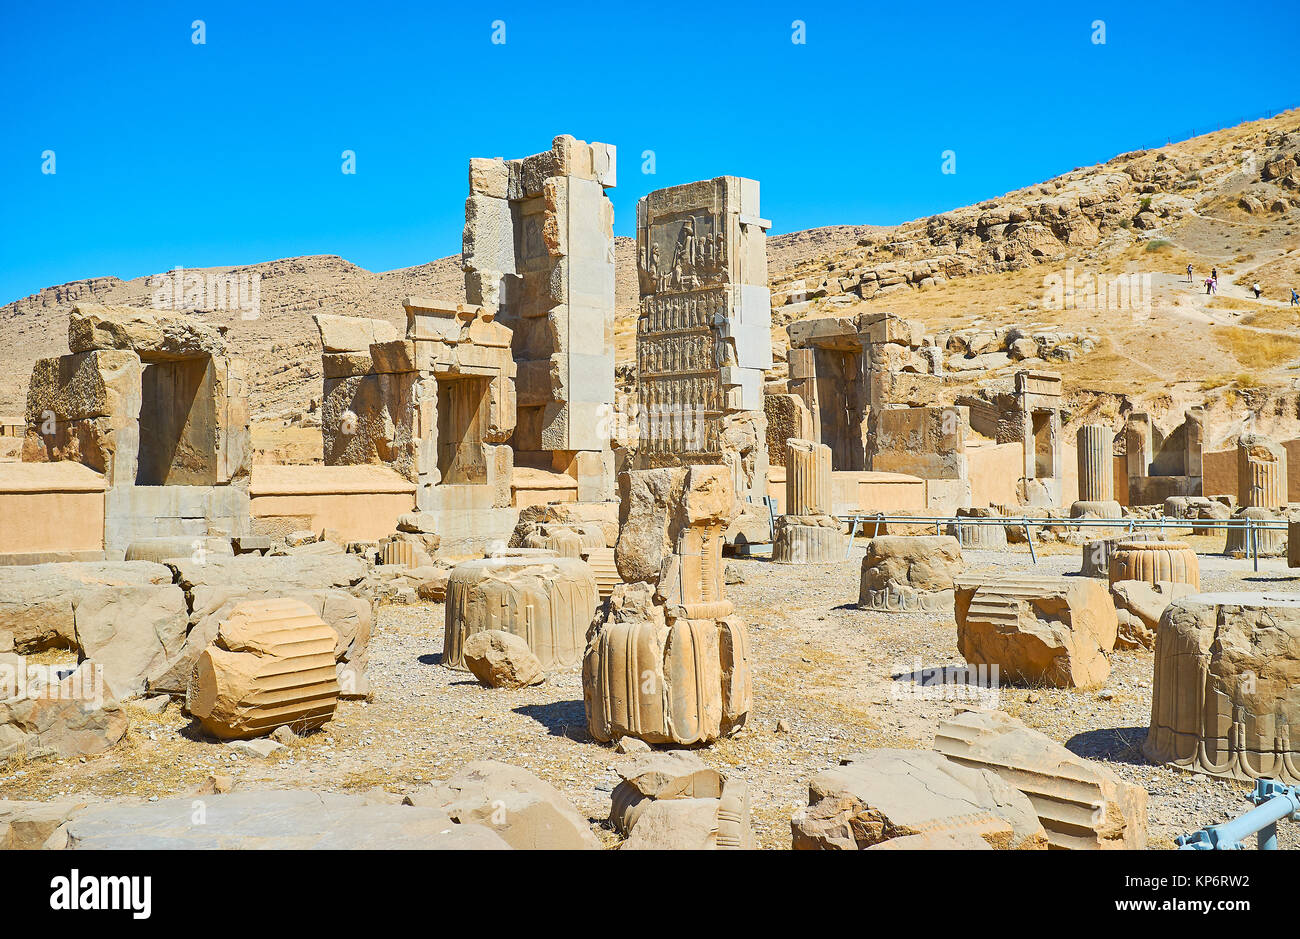 Persepolis archaeological site is the best place to discover ancient architecture and art of Persia, Iran. - Stock Image